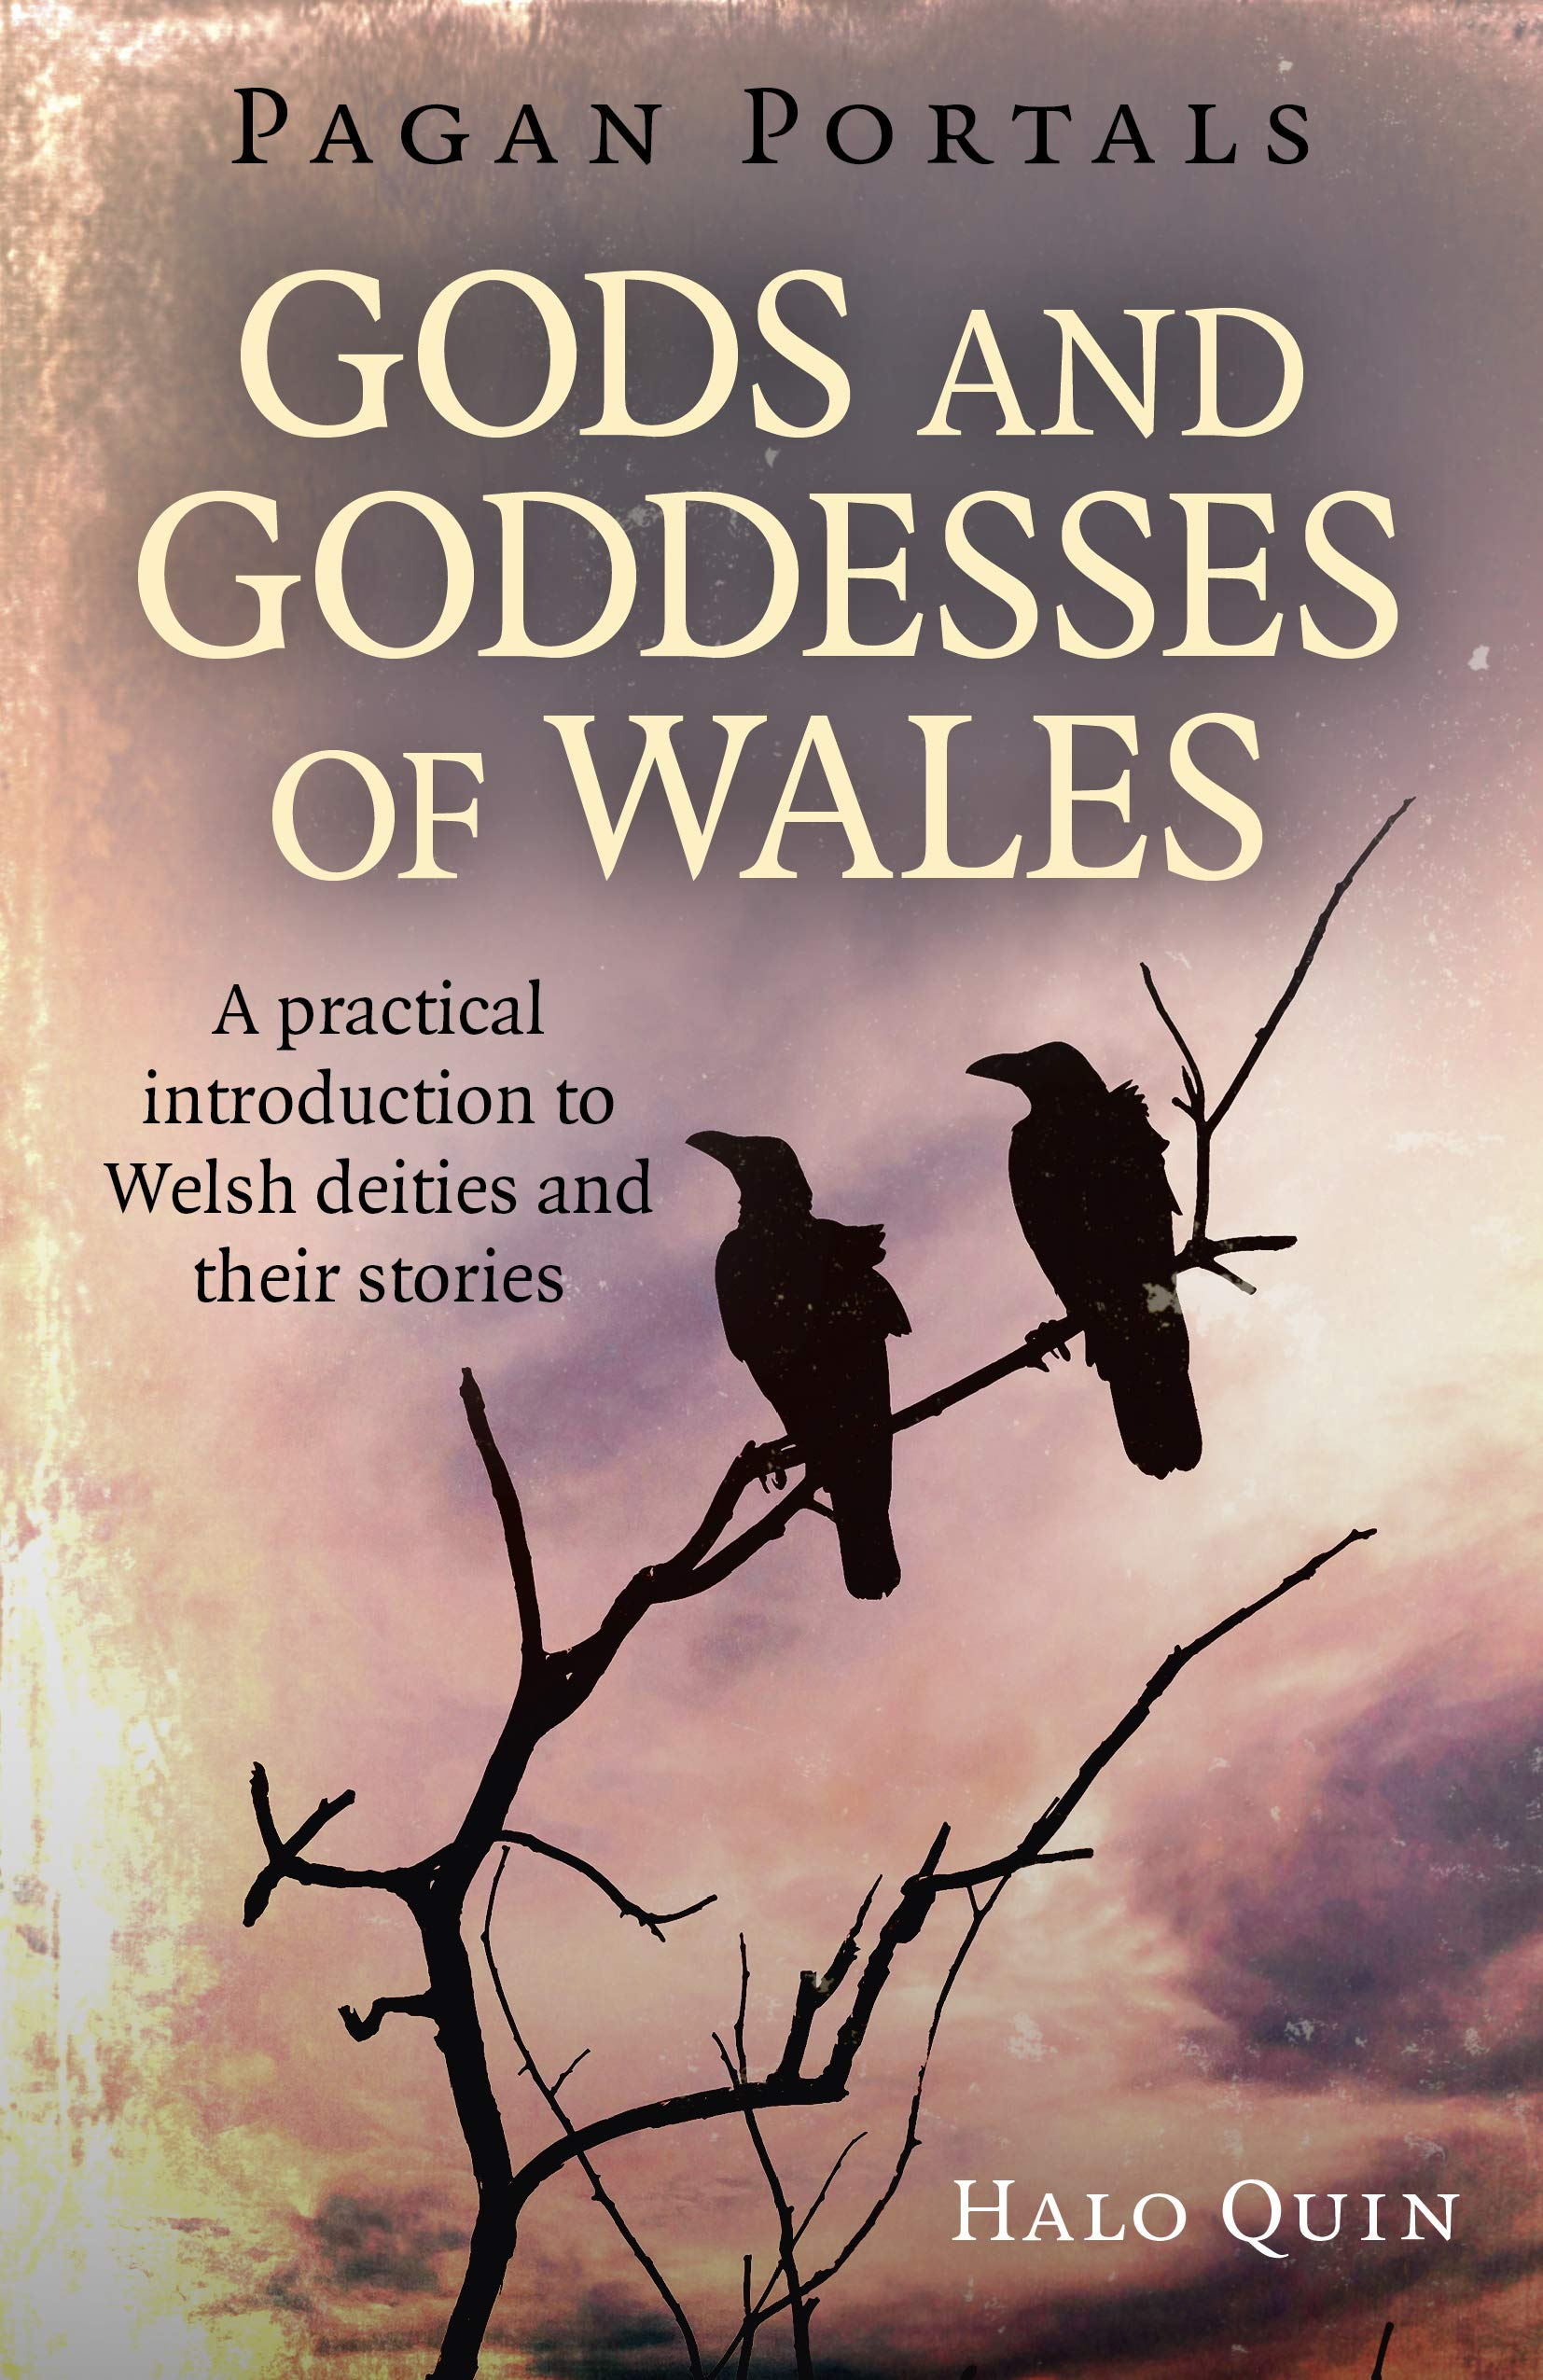 Pagan Portals - Gods & Goddess of Wales